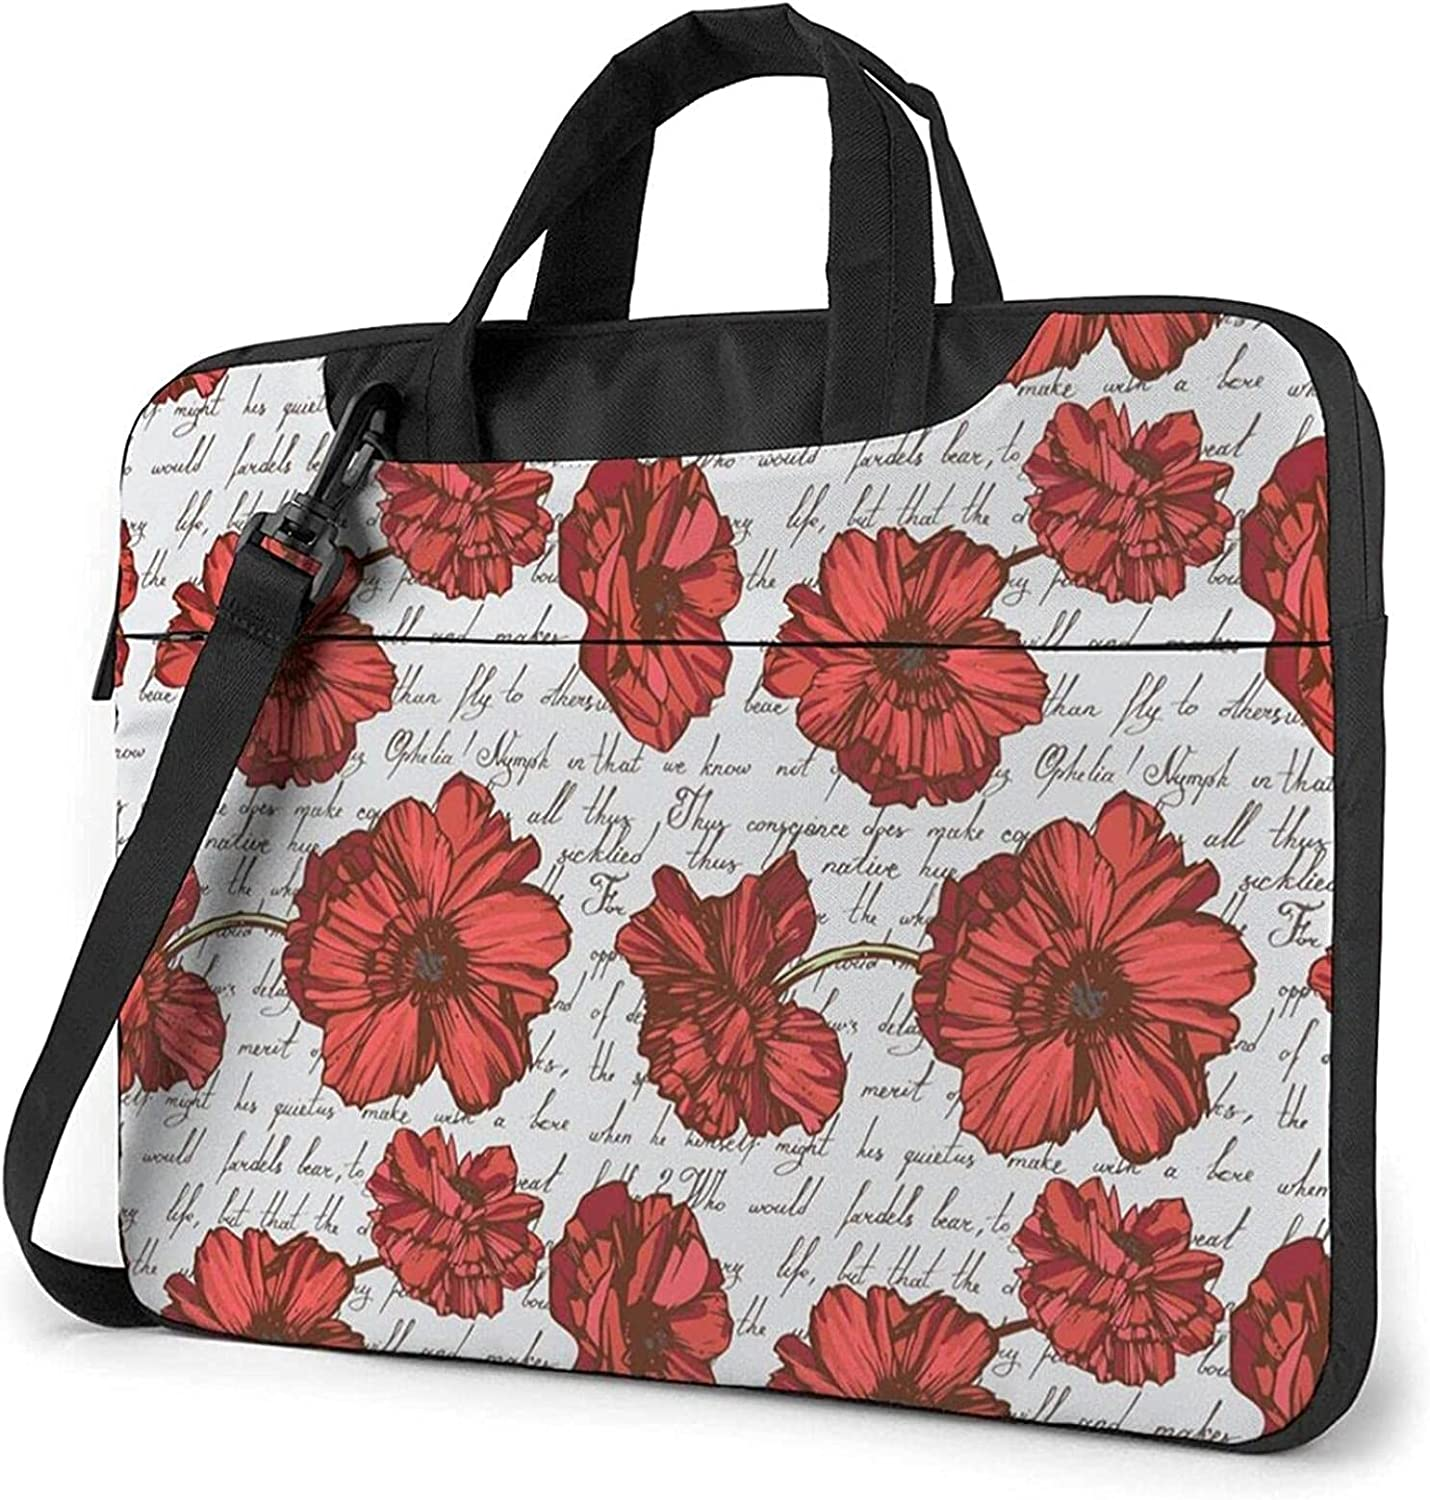 Epushow Seamless Poppies Laptop Bag Brand Cheap Sale Venue Attention brand Inch Strap Shoulder 15.6 Mes